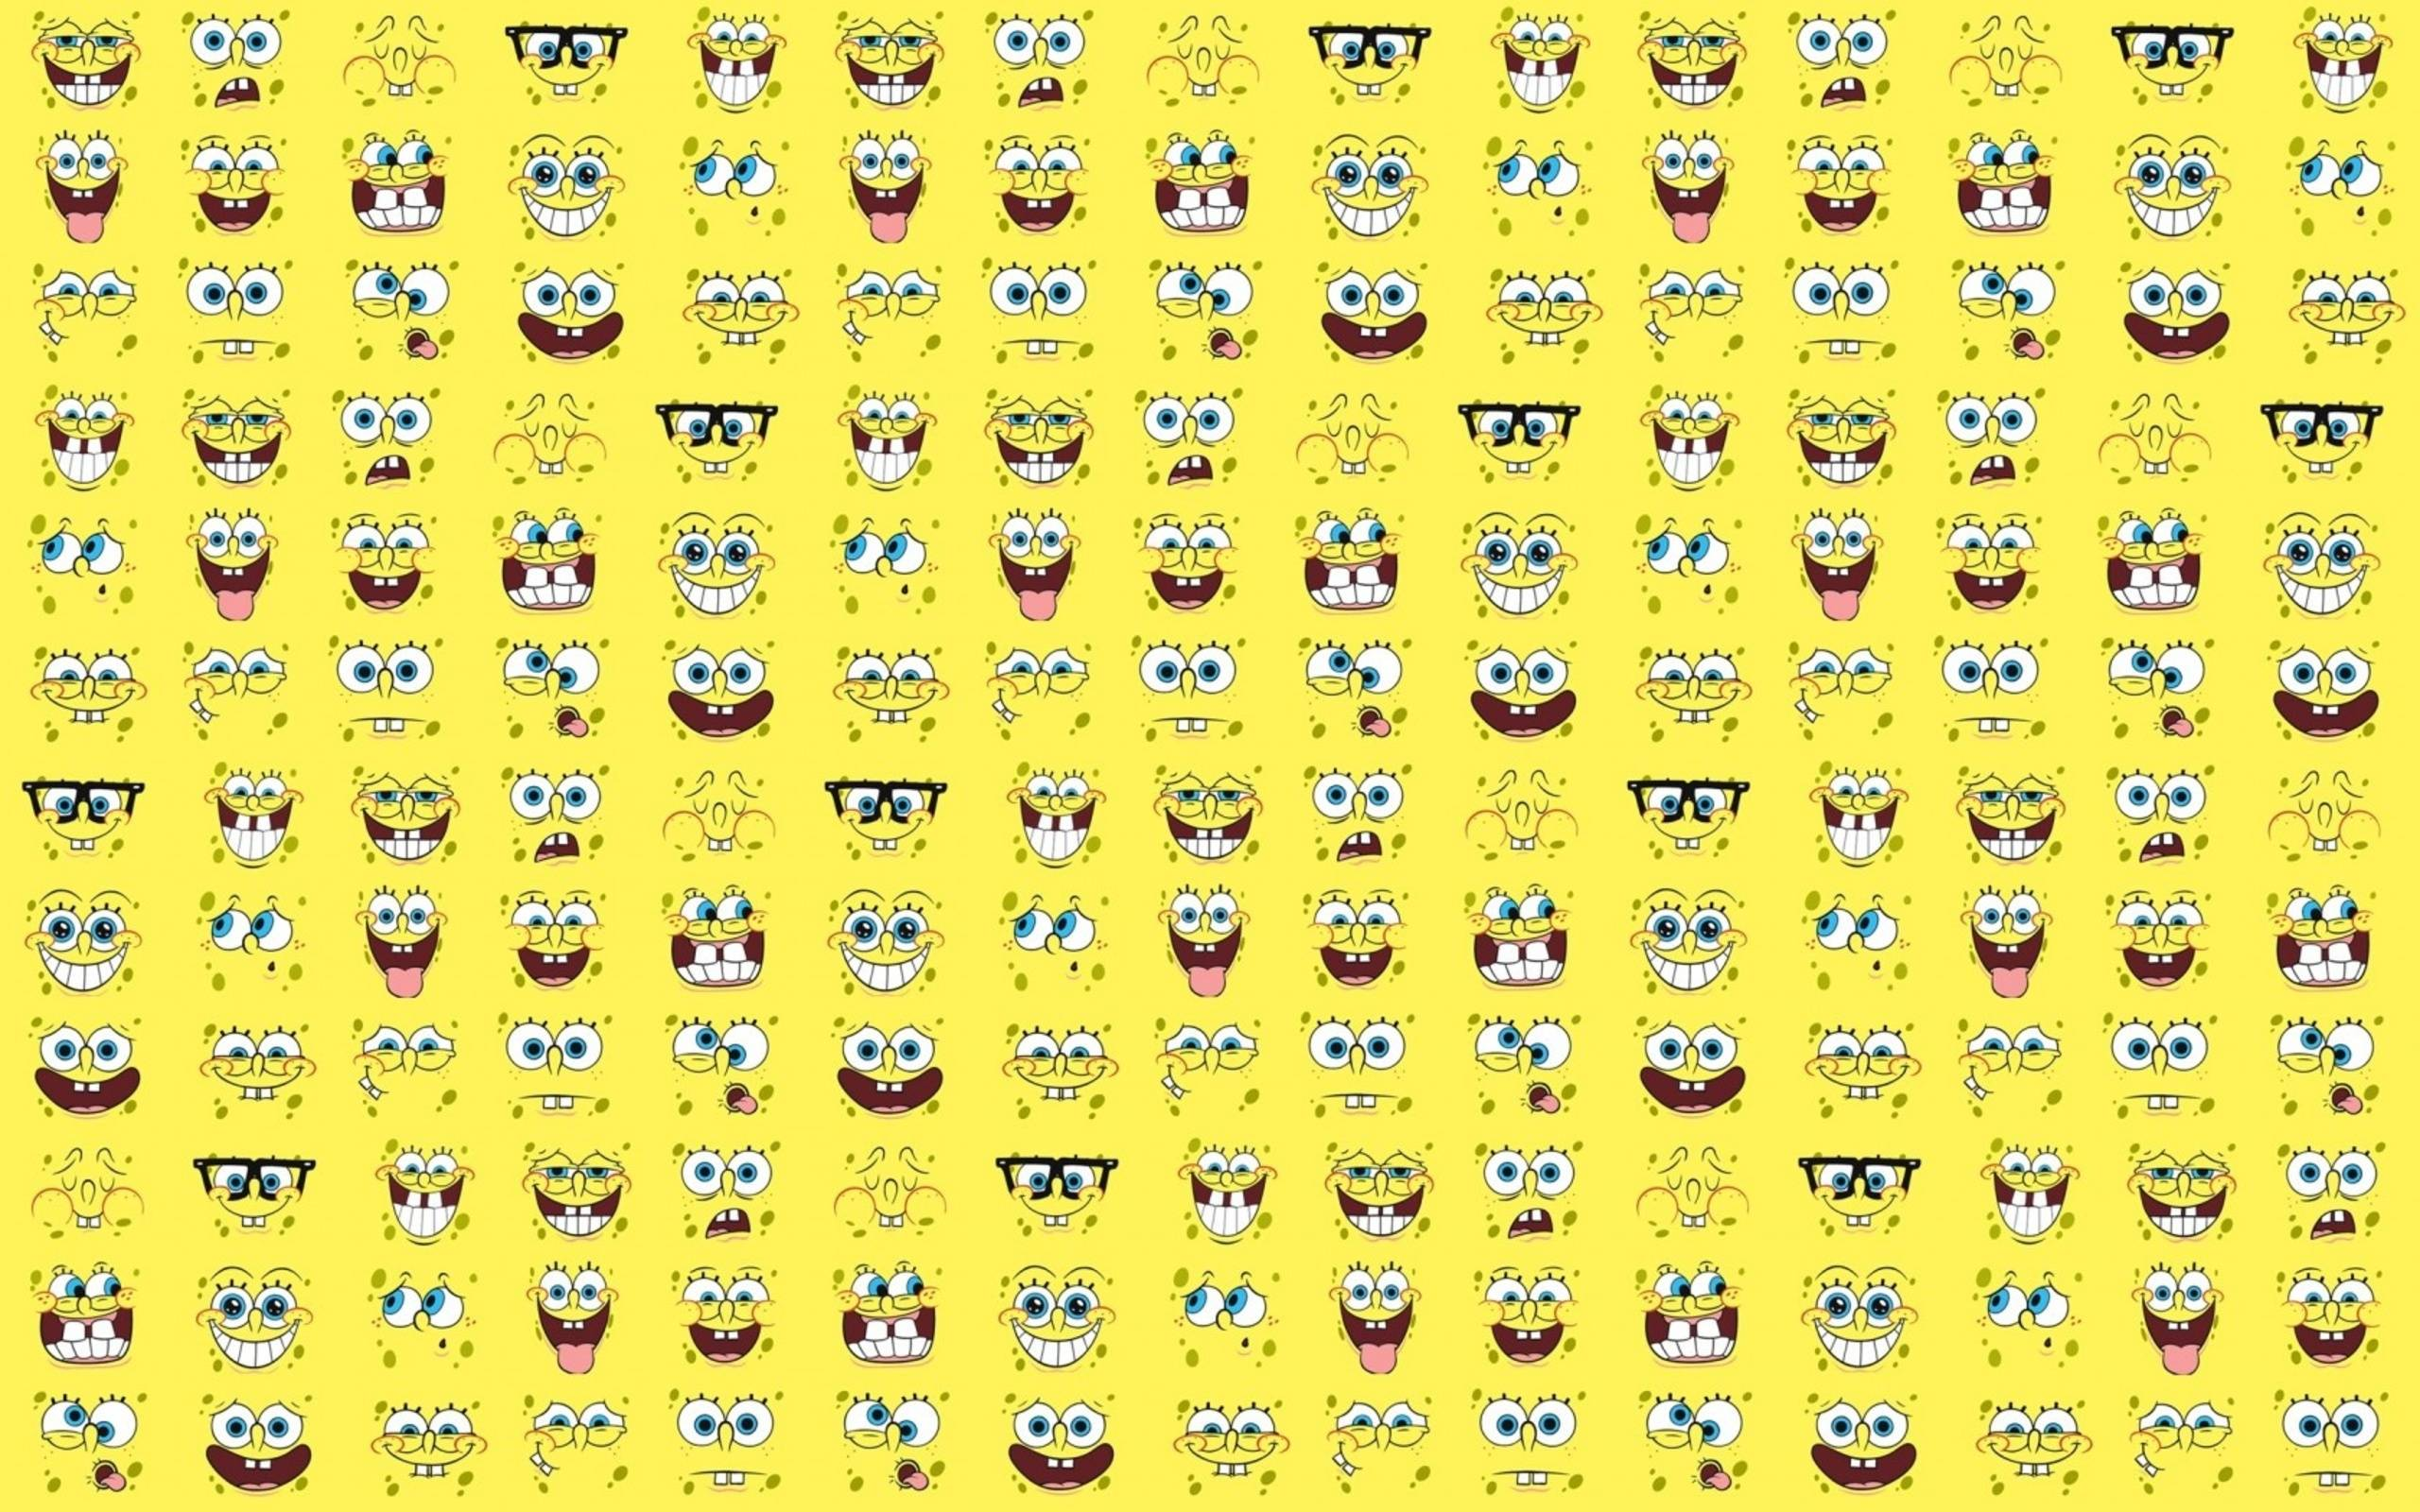 spongebob wallpaper | spongebob wallpaper